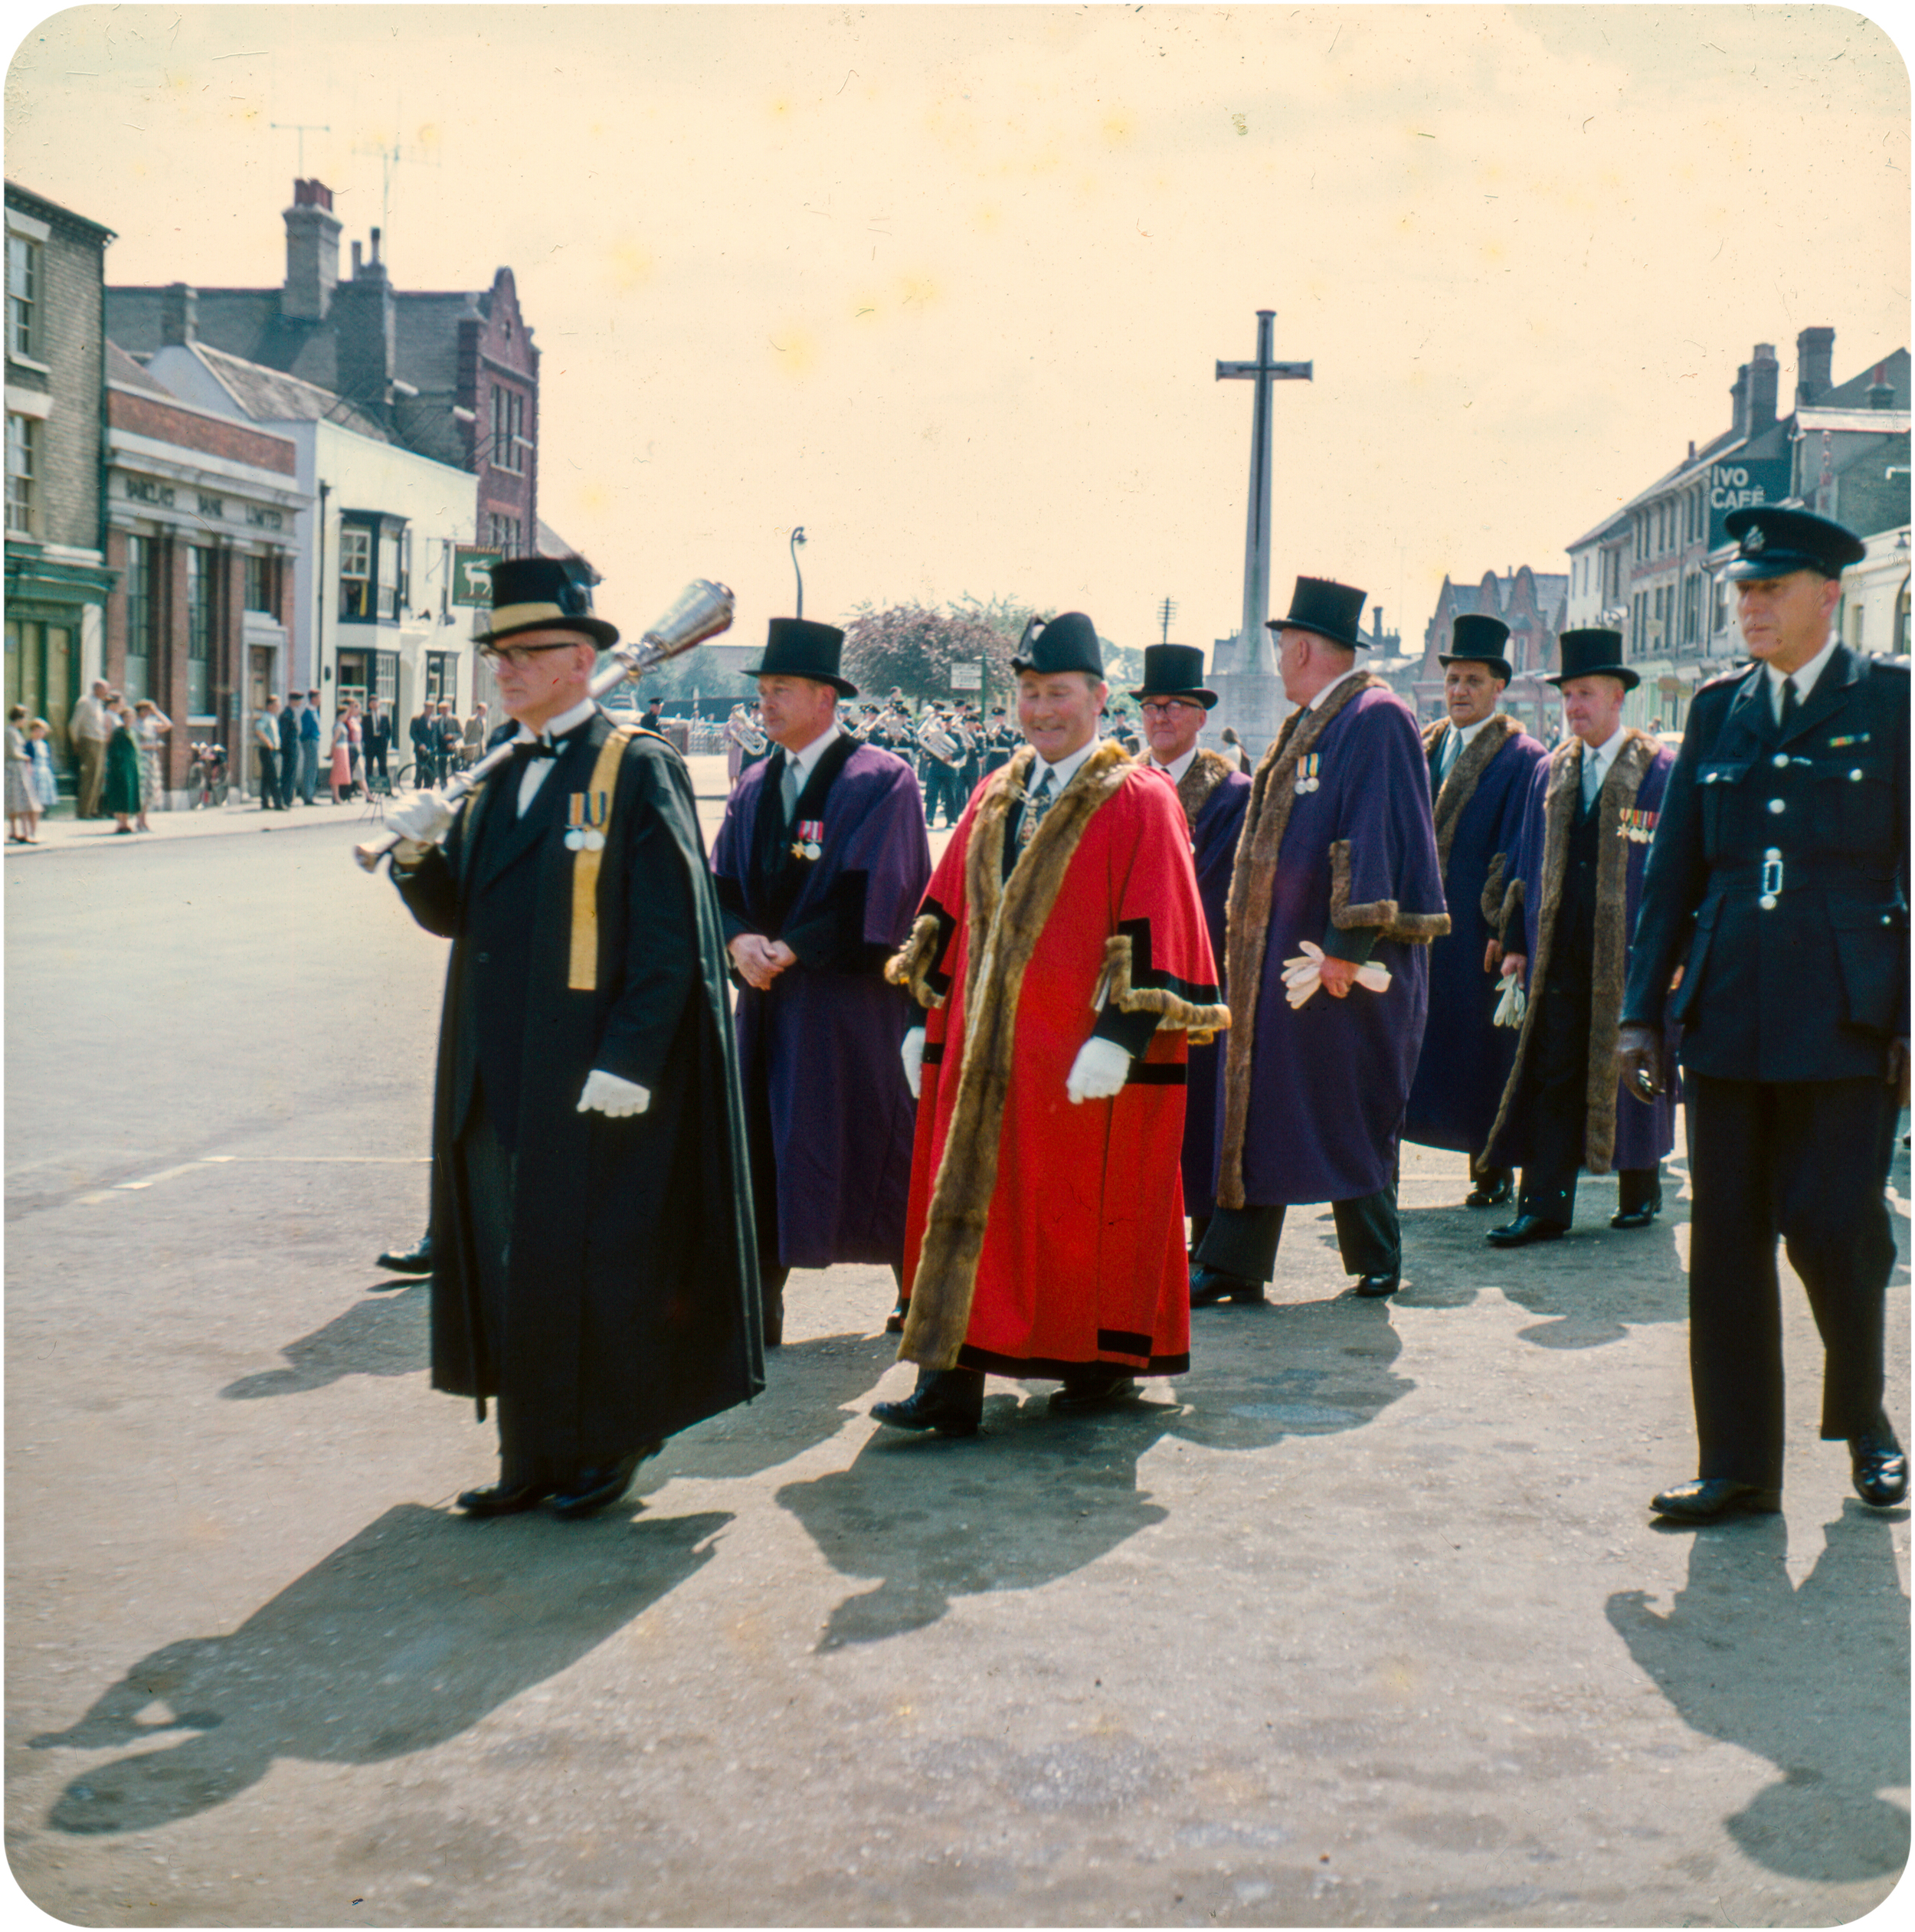 Procession - Market Hill, St. Ives - 1960